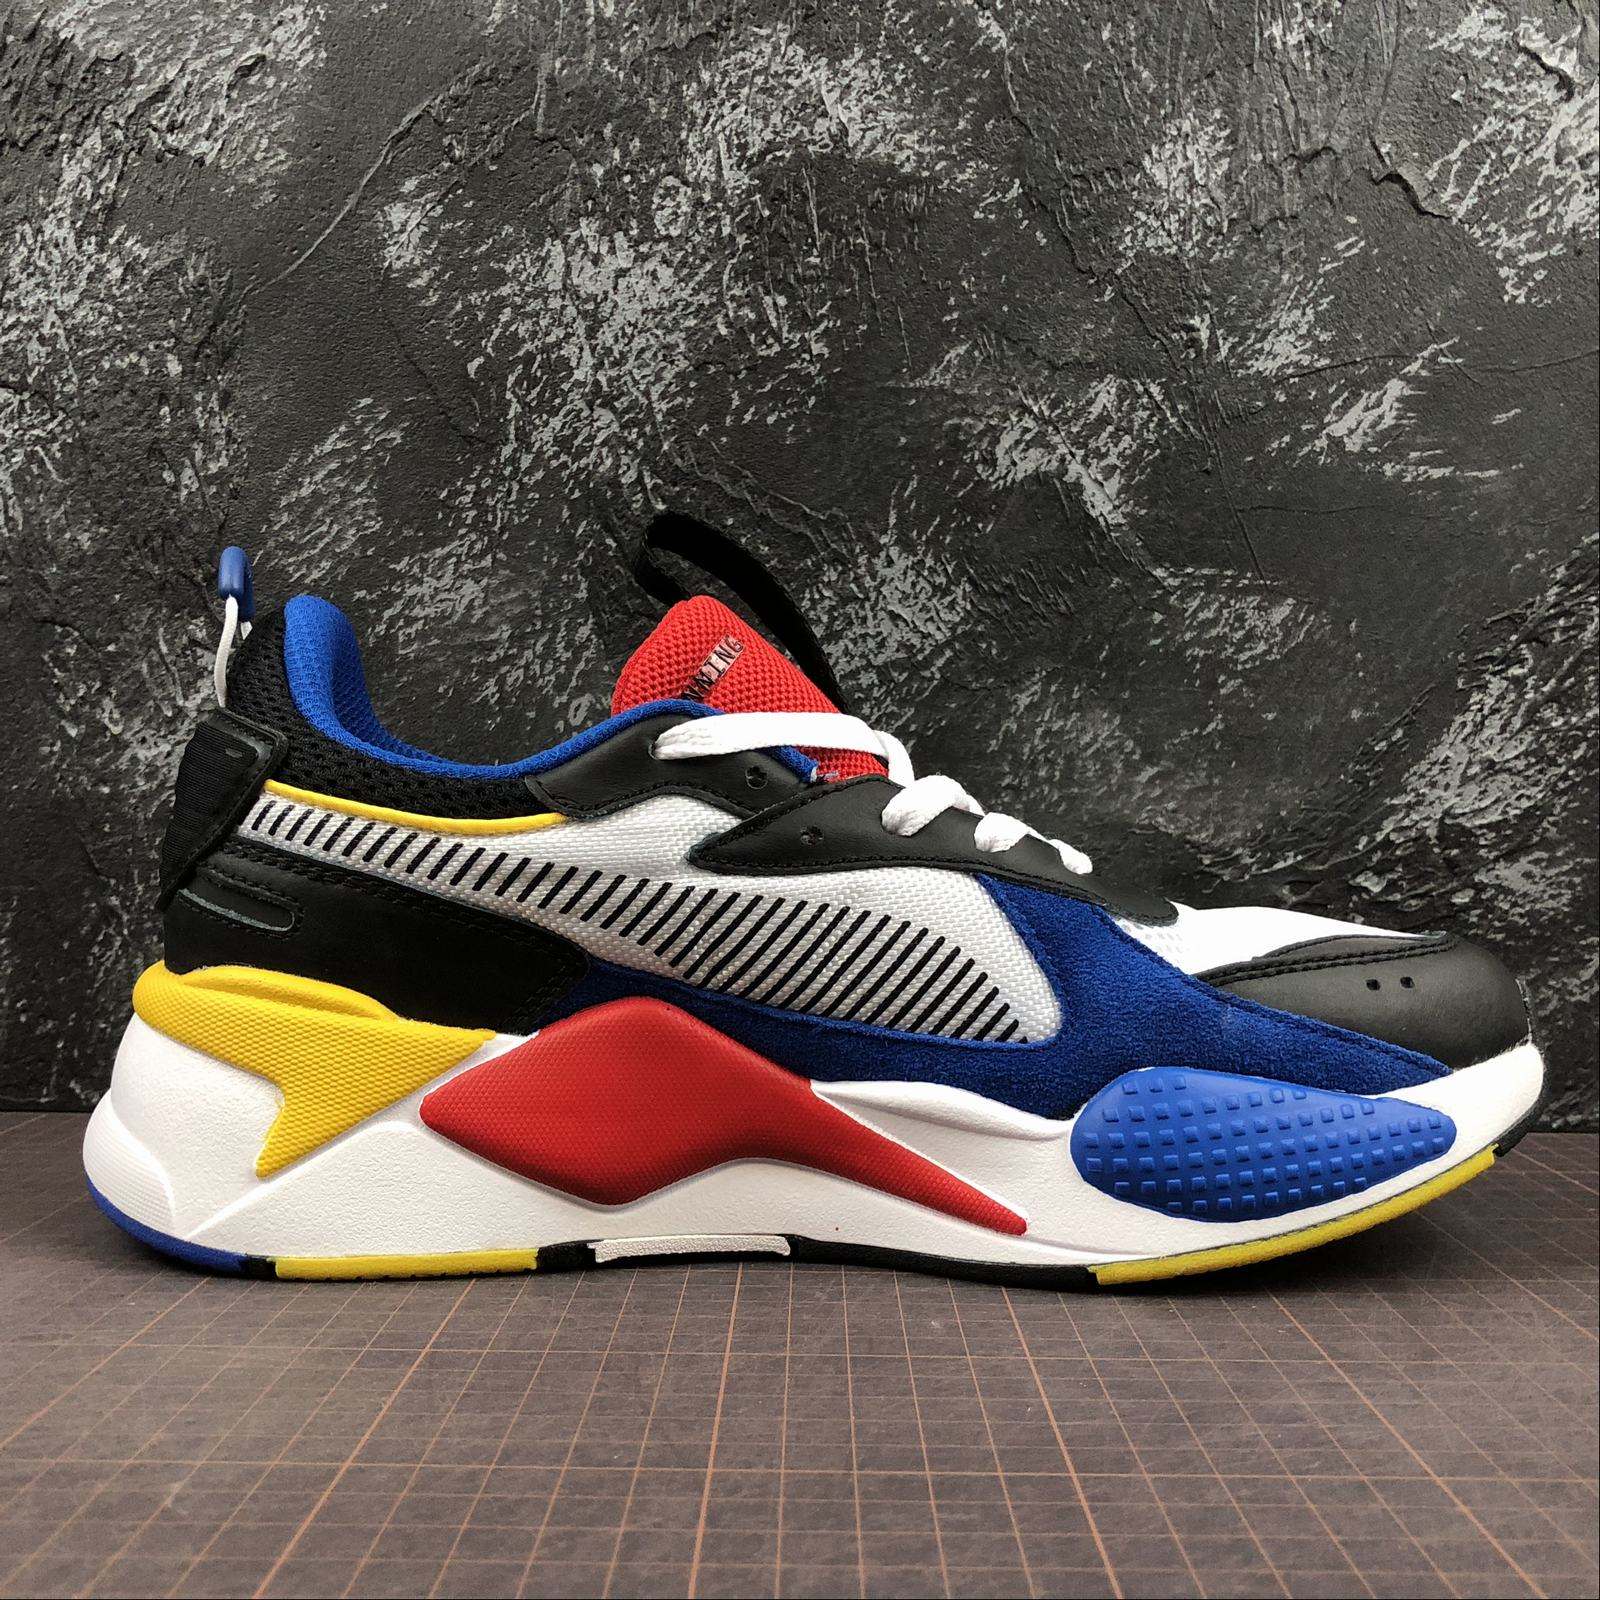 Женские кроссовки Puma RS-X Reinvention Women White,Blue,Blast - фото №2